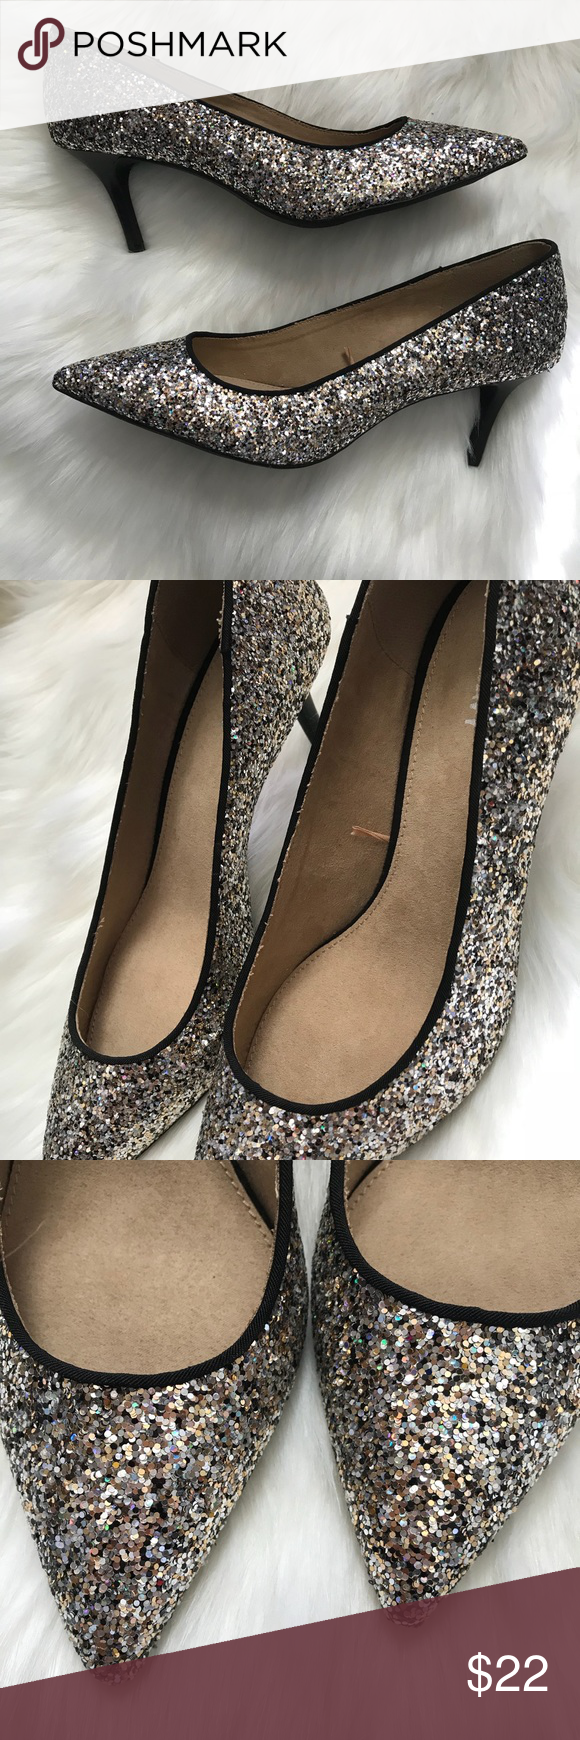 65744d9e1569 NEW Old Navy Glitter Short Heels New and never worn before! Size 8 from Old  Navy. Not too high and perfect to walk around in. No sparkles are missing.